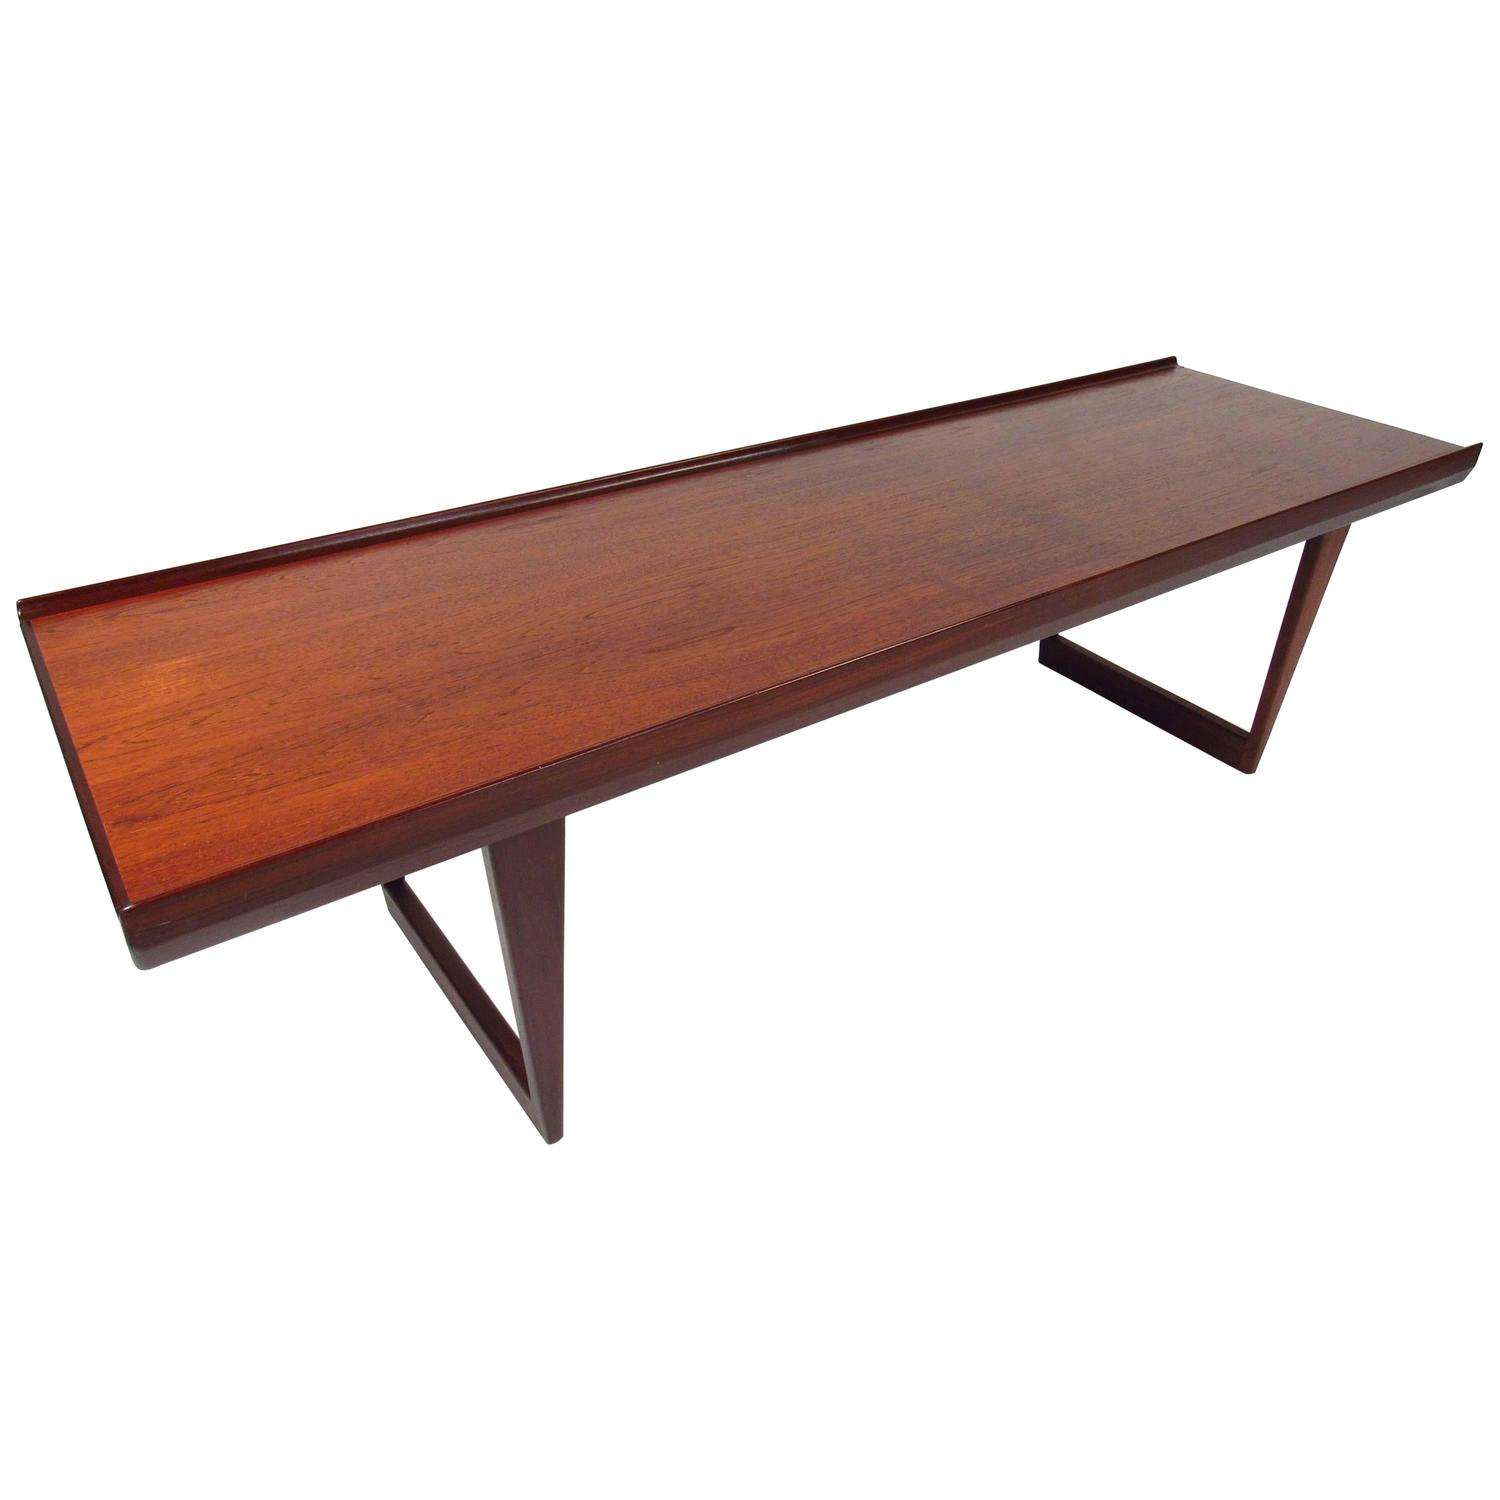 Midcentury Danish Sled Leg Coffee Table For Sale At 1stdibs